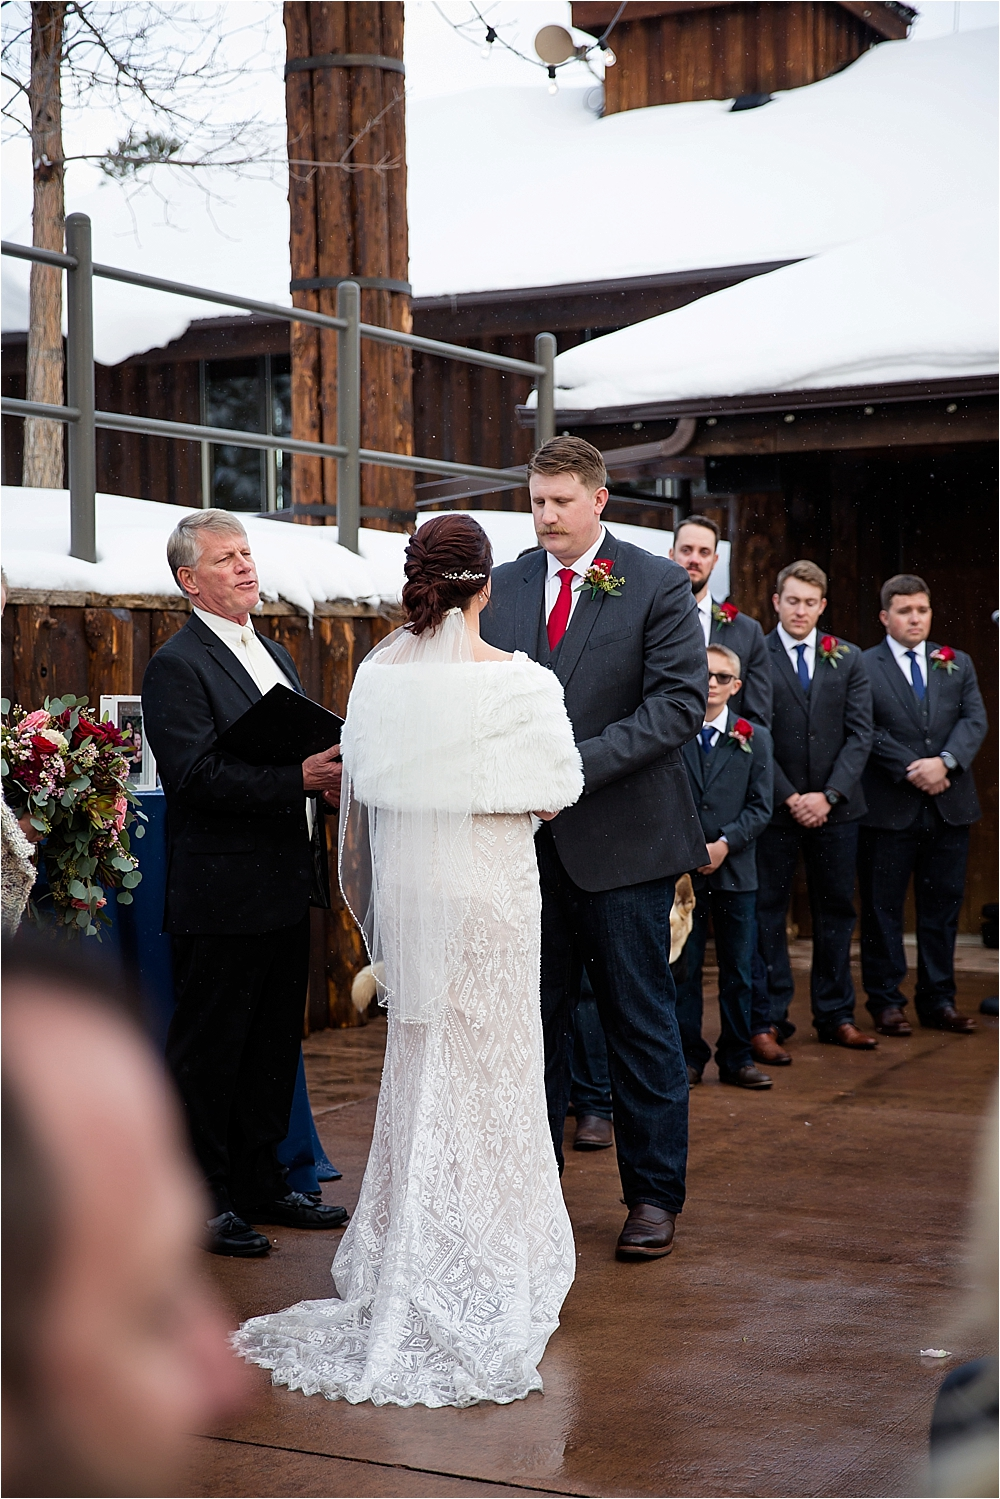 Kristin + Weston's Spruce Mountain Wedding_0021.jpg